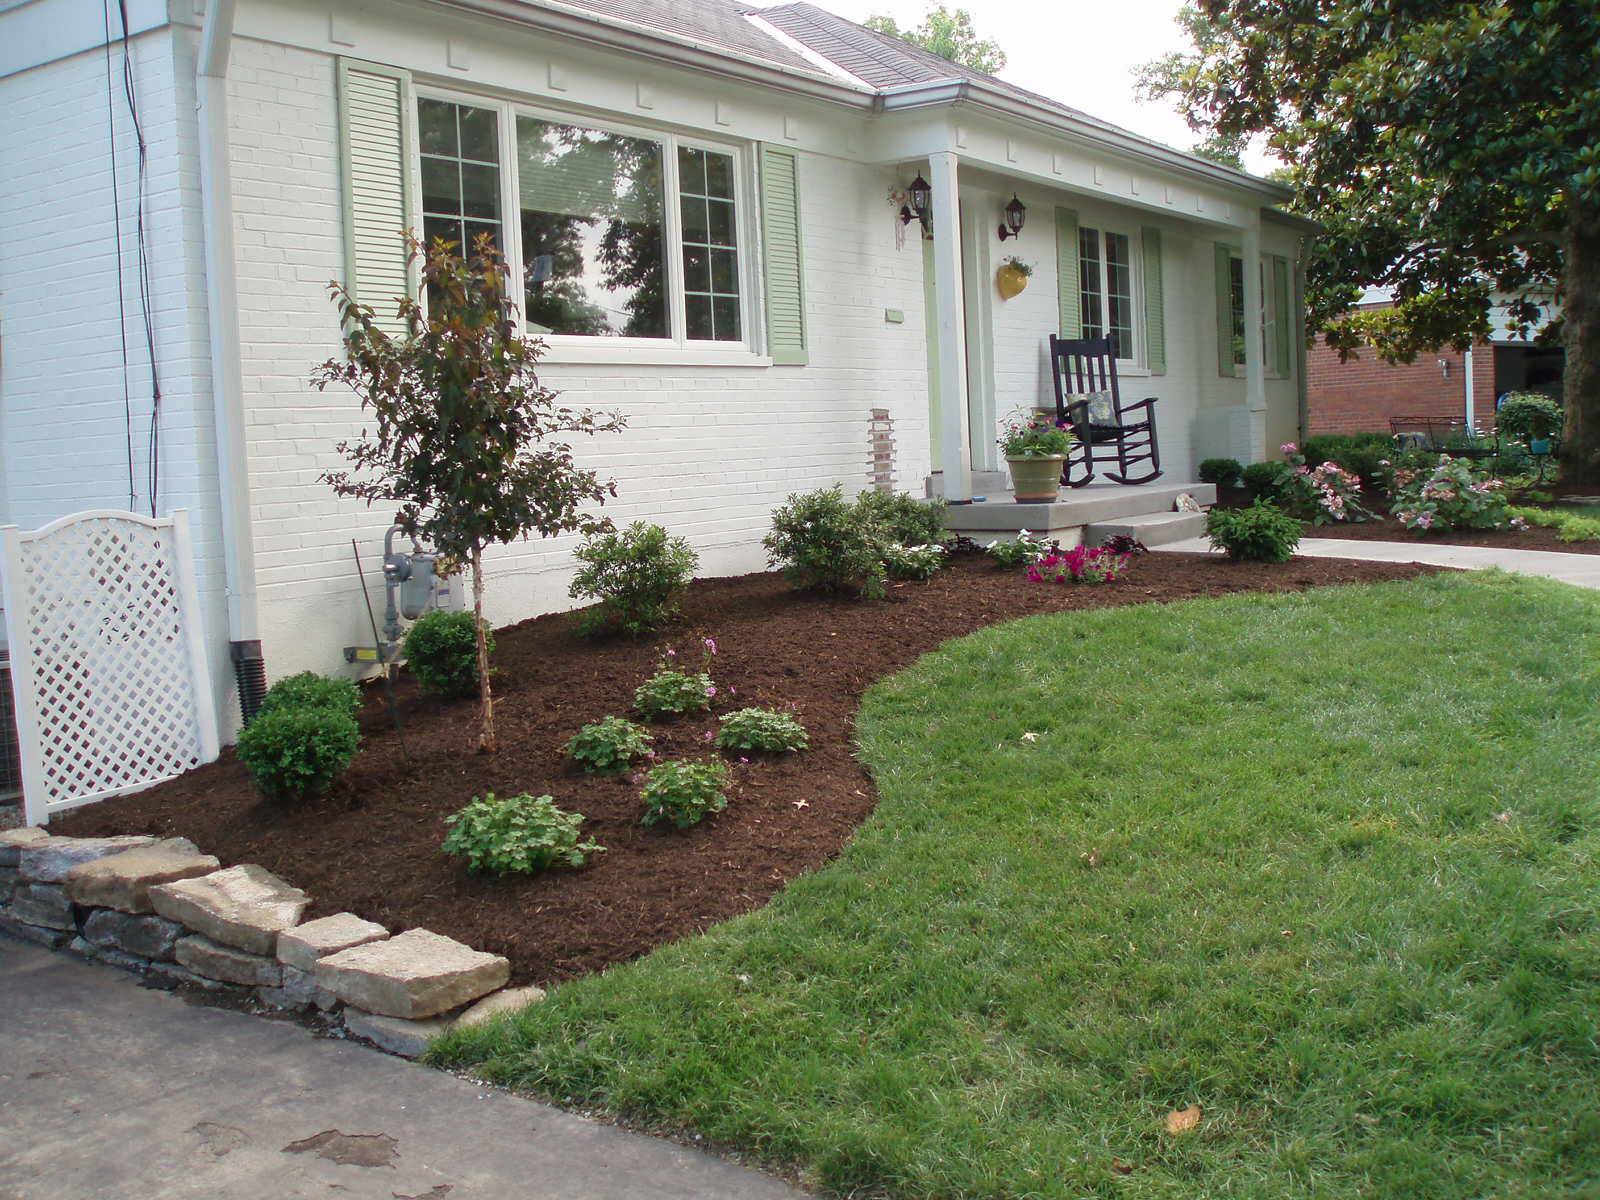 one of our experienced and knowledgeable landscape designers will come out to your home or business and discuss your project